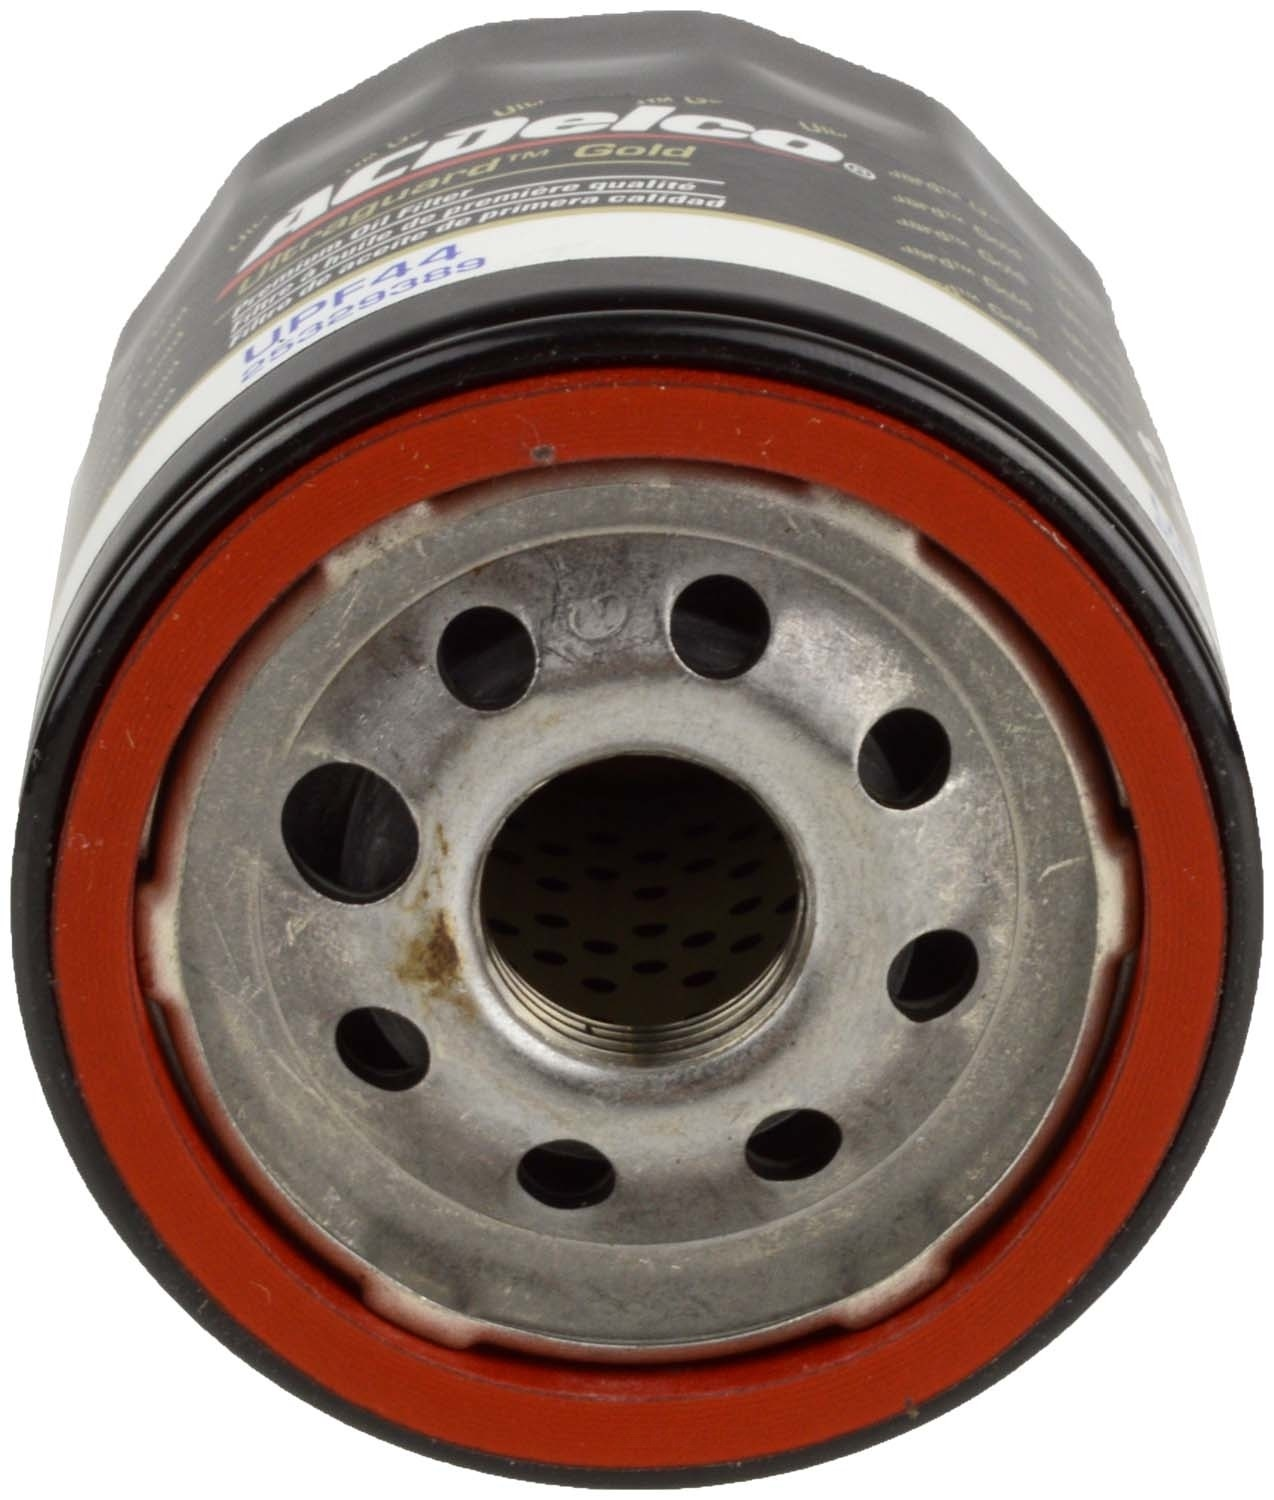 ACDELCO SPECIALTY - Ultraguard Engine Oil Filter - DCE UPF44